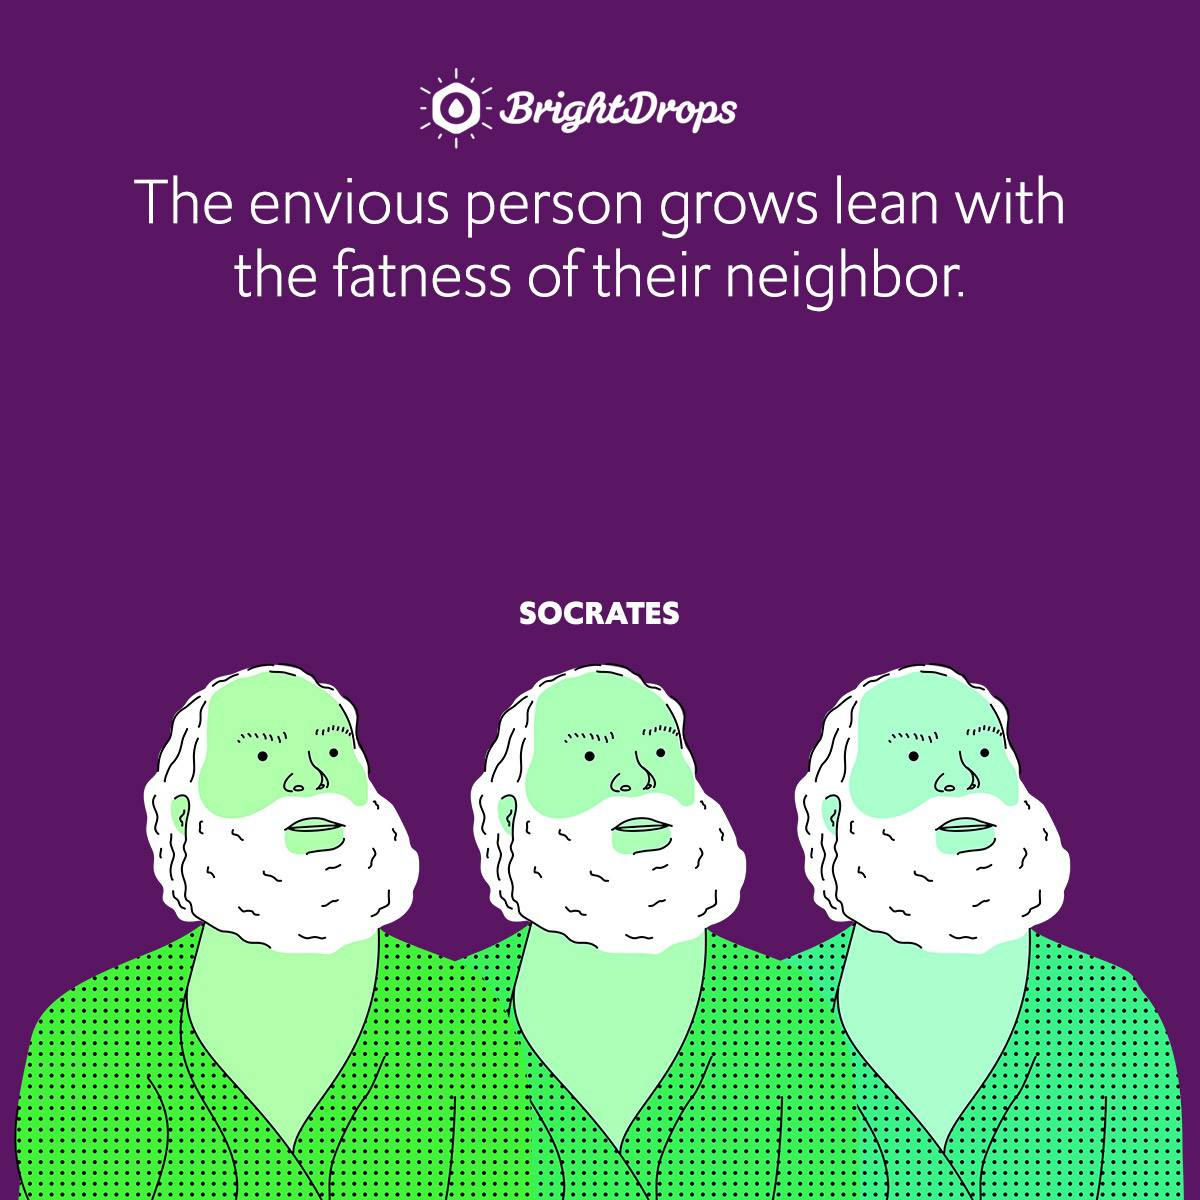 The envious person grows lean with the fatness of their neighbor.